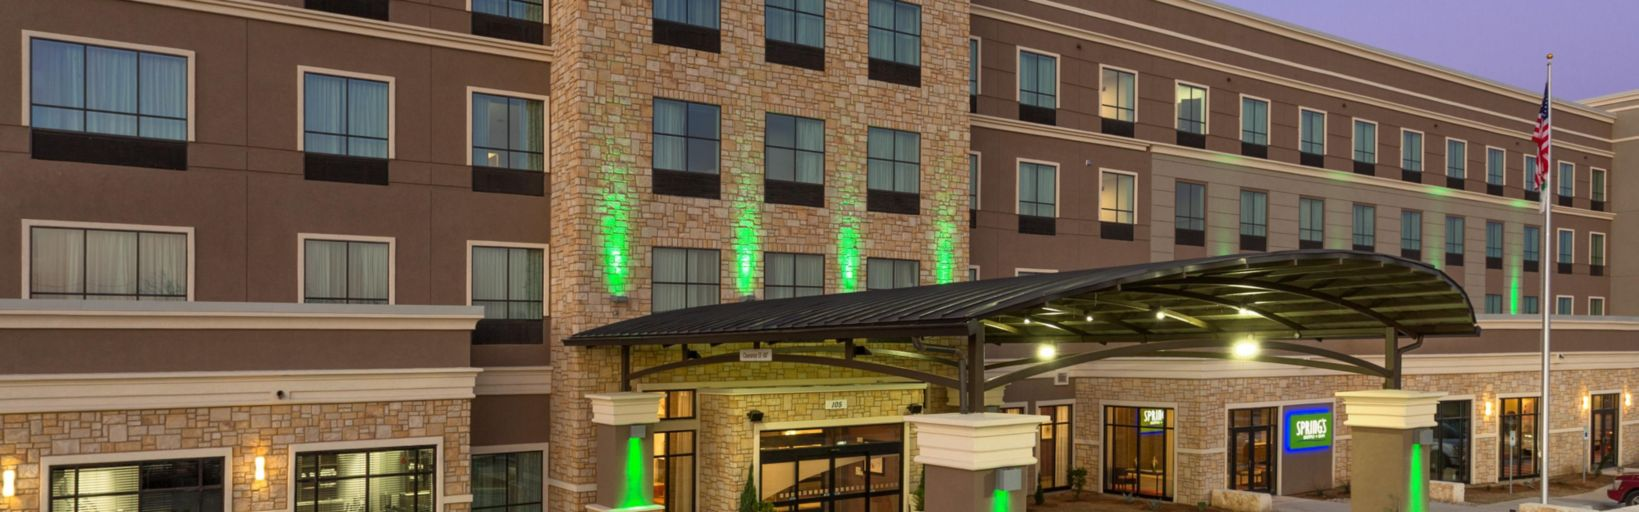 Holiday Inn, newest full service hotel in San Marcos, TX